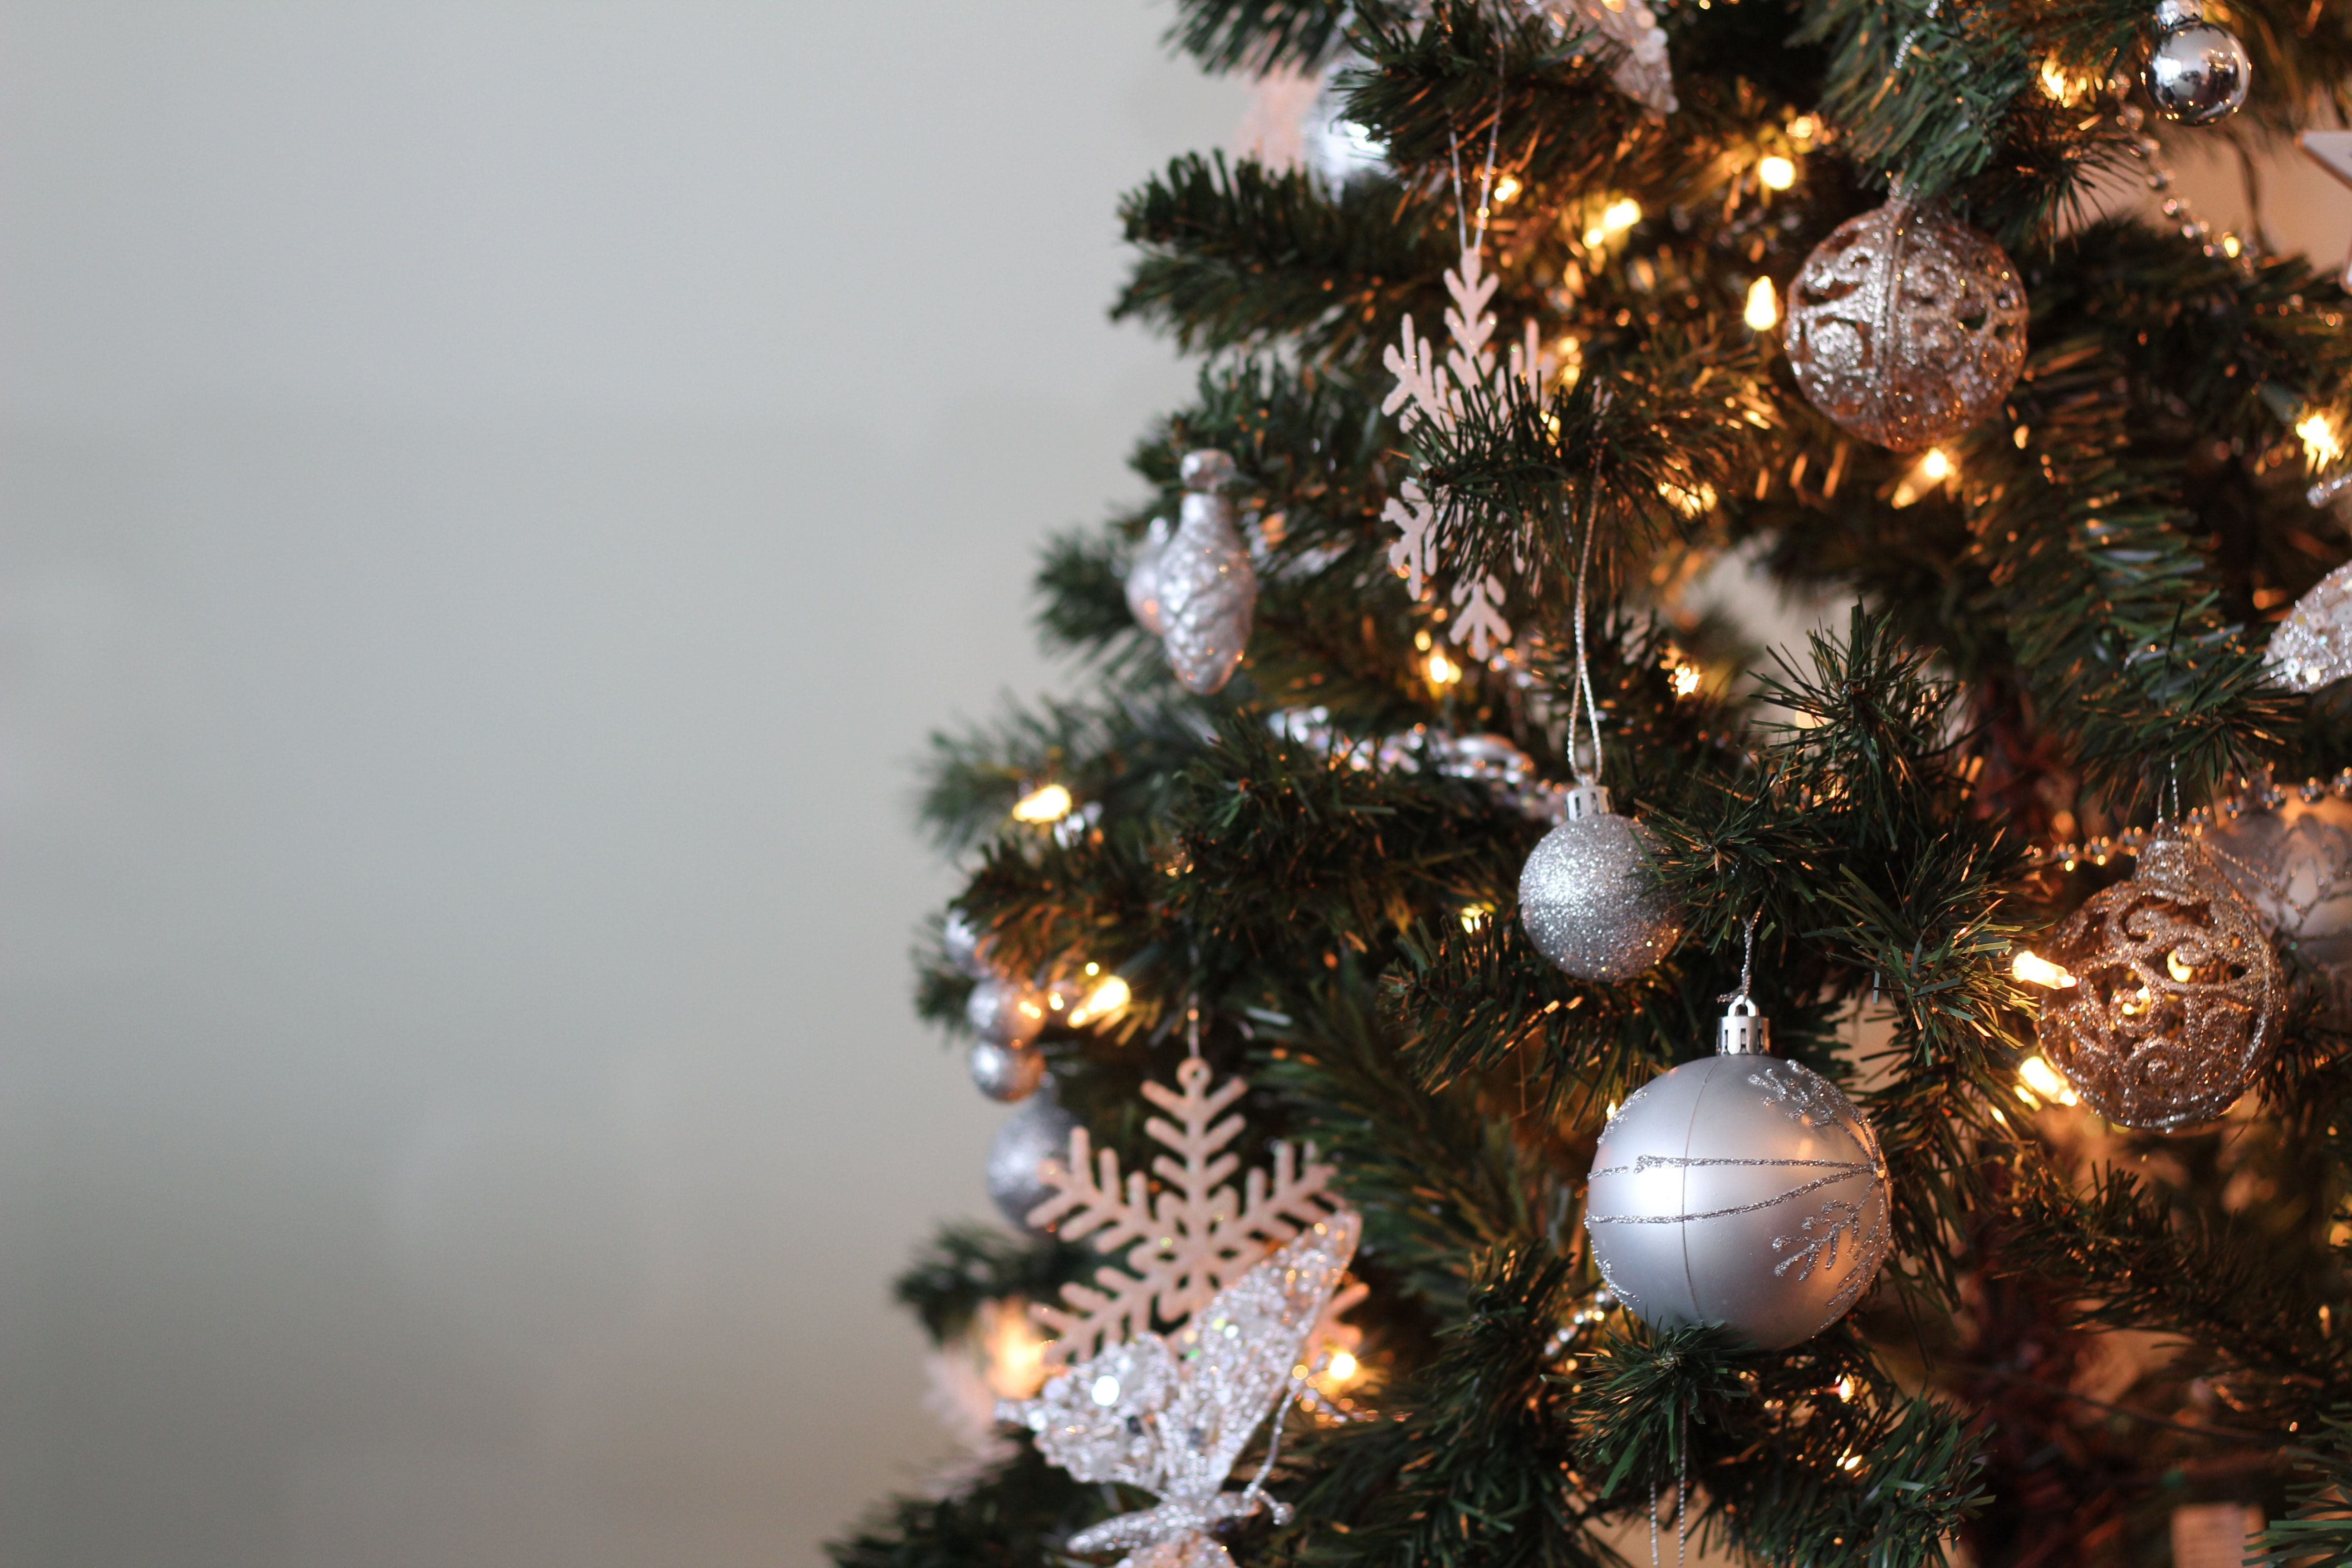 The Best Pre Lit Christmas Trees For Stress Free Festivities